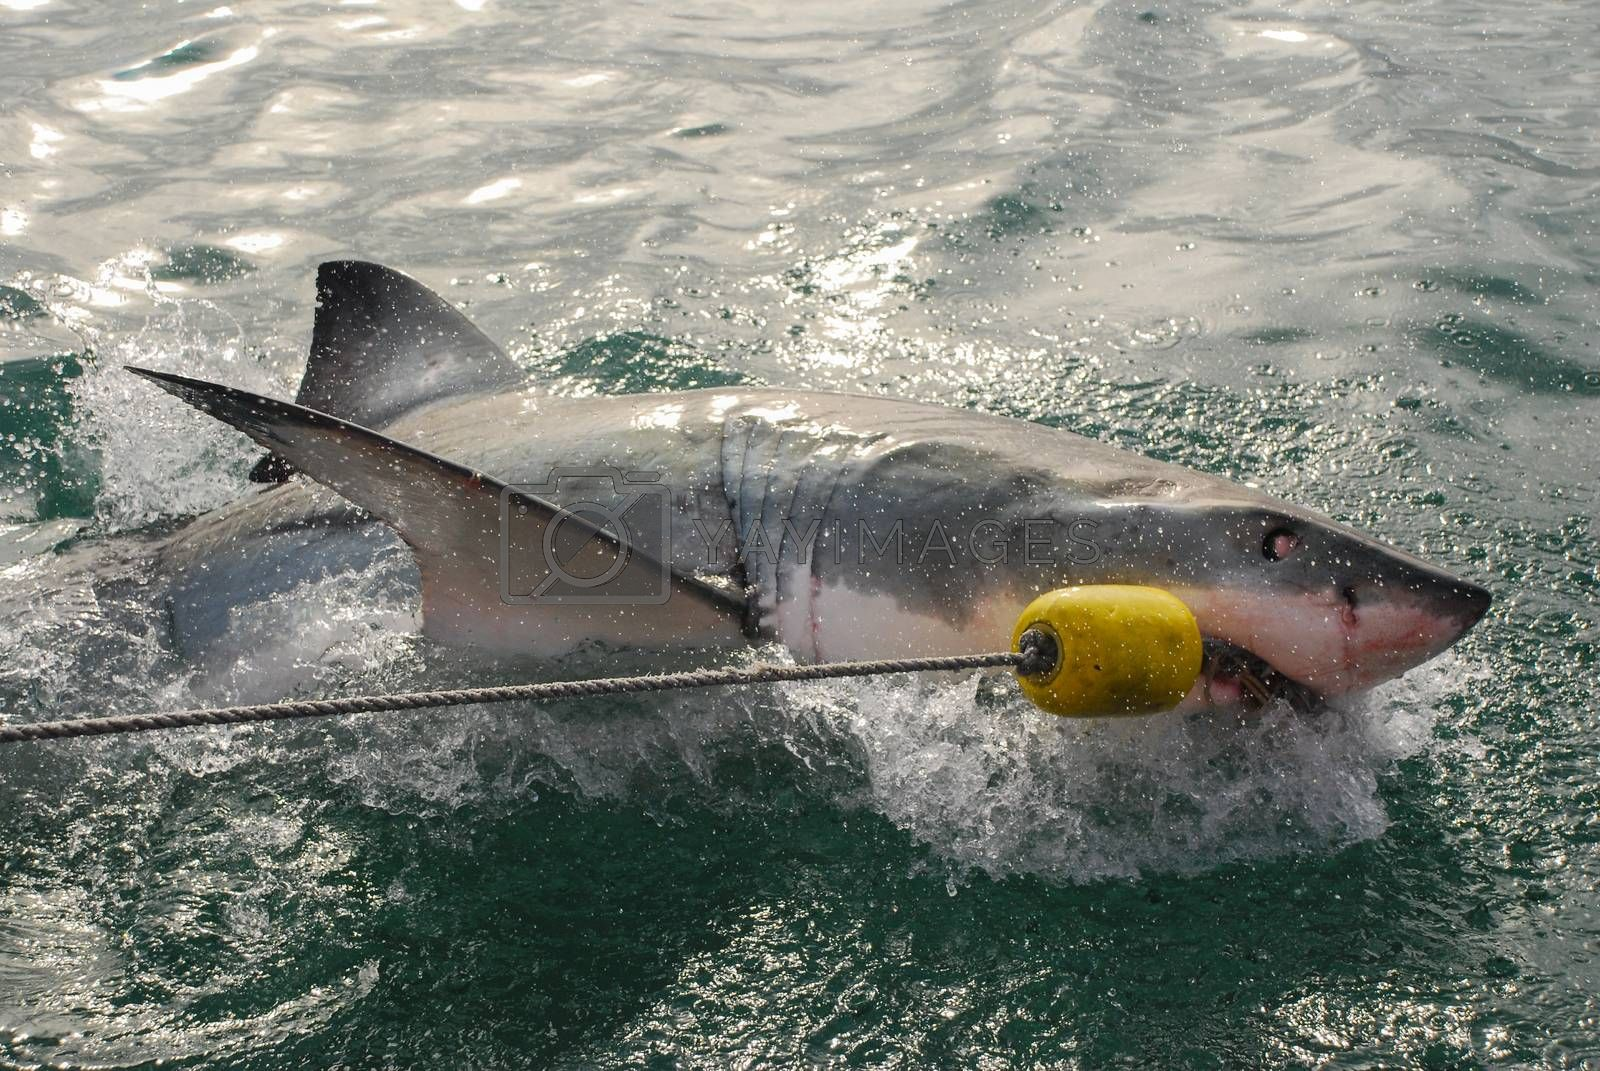 Great white shark (Carcharodon carcharias) by Anna07